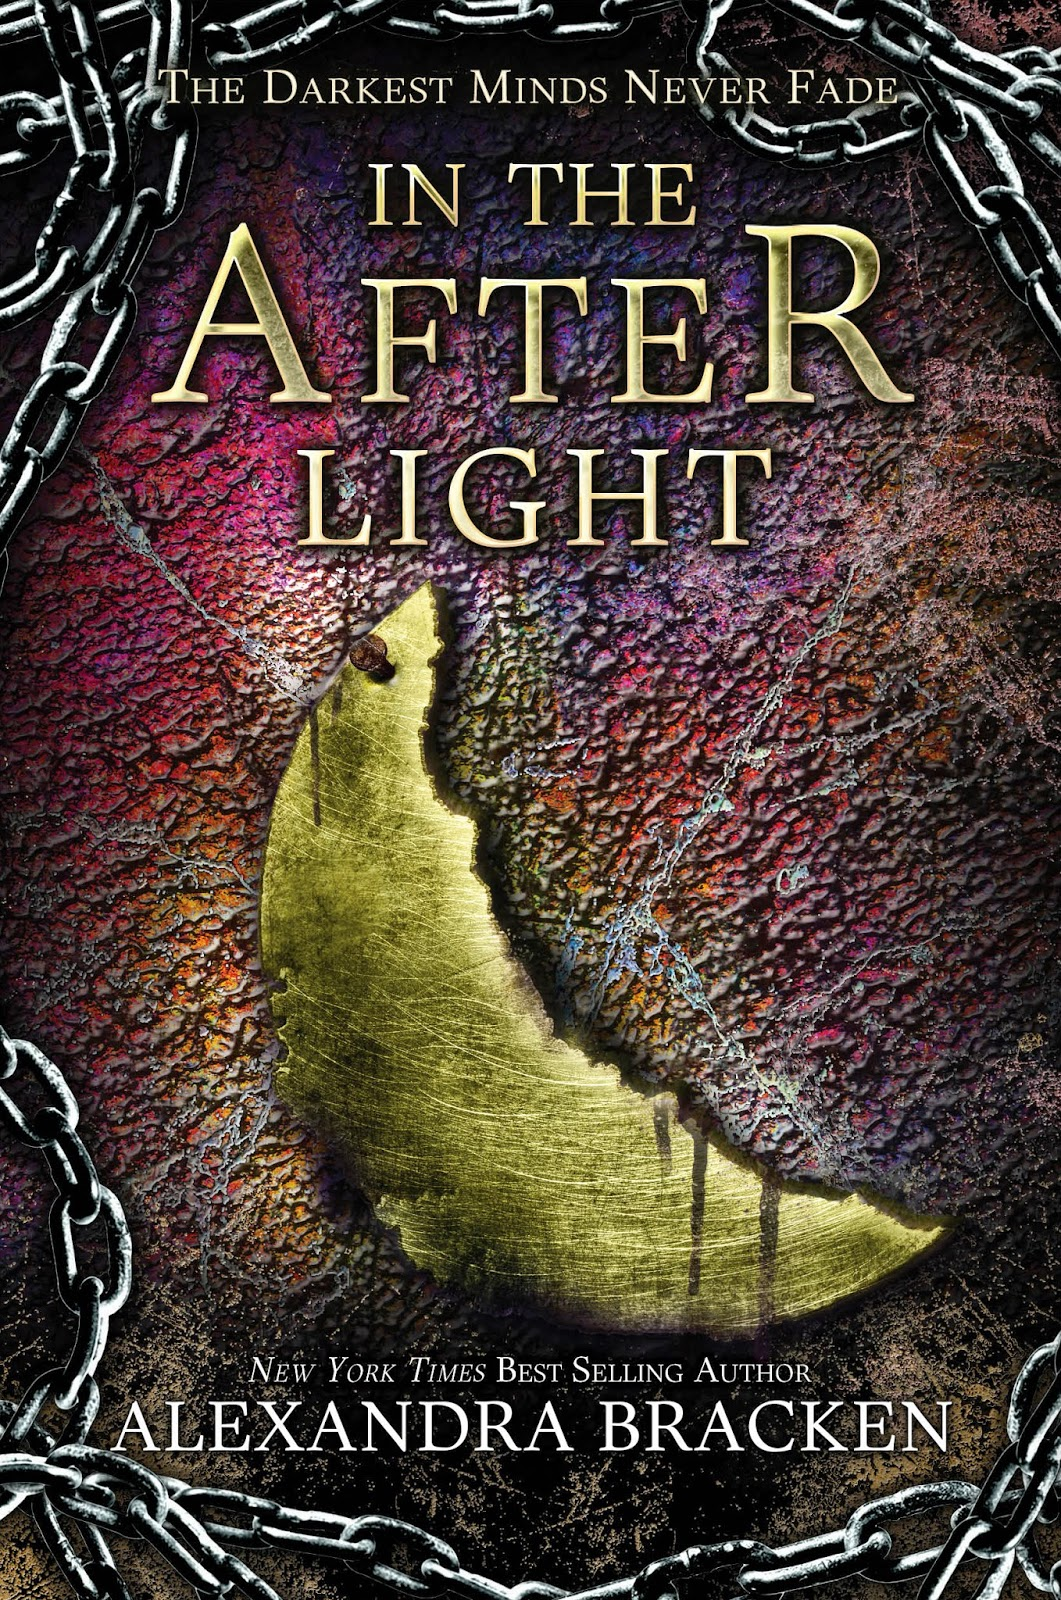 in the afterlight - alexandra bracken